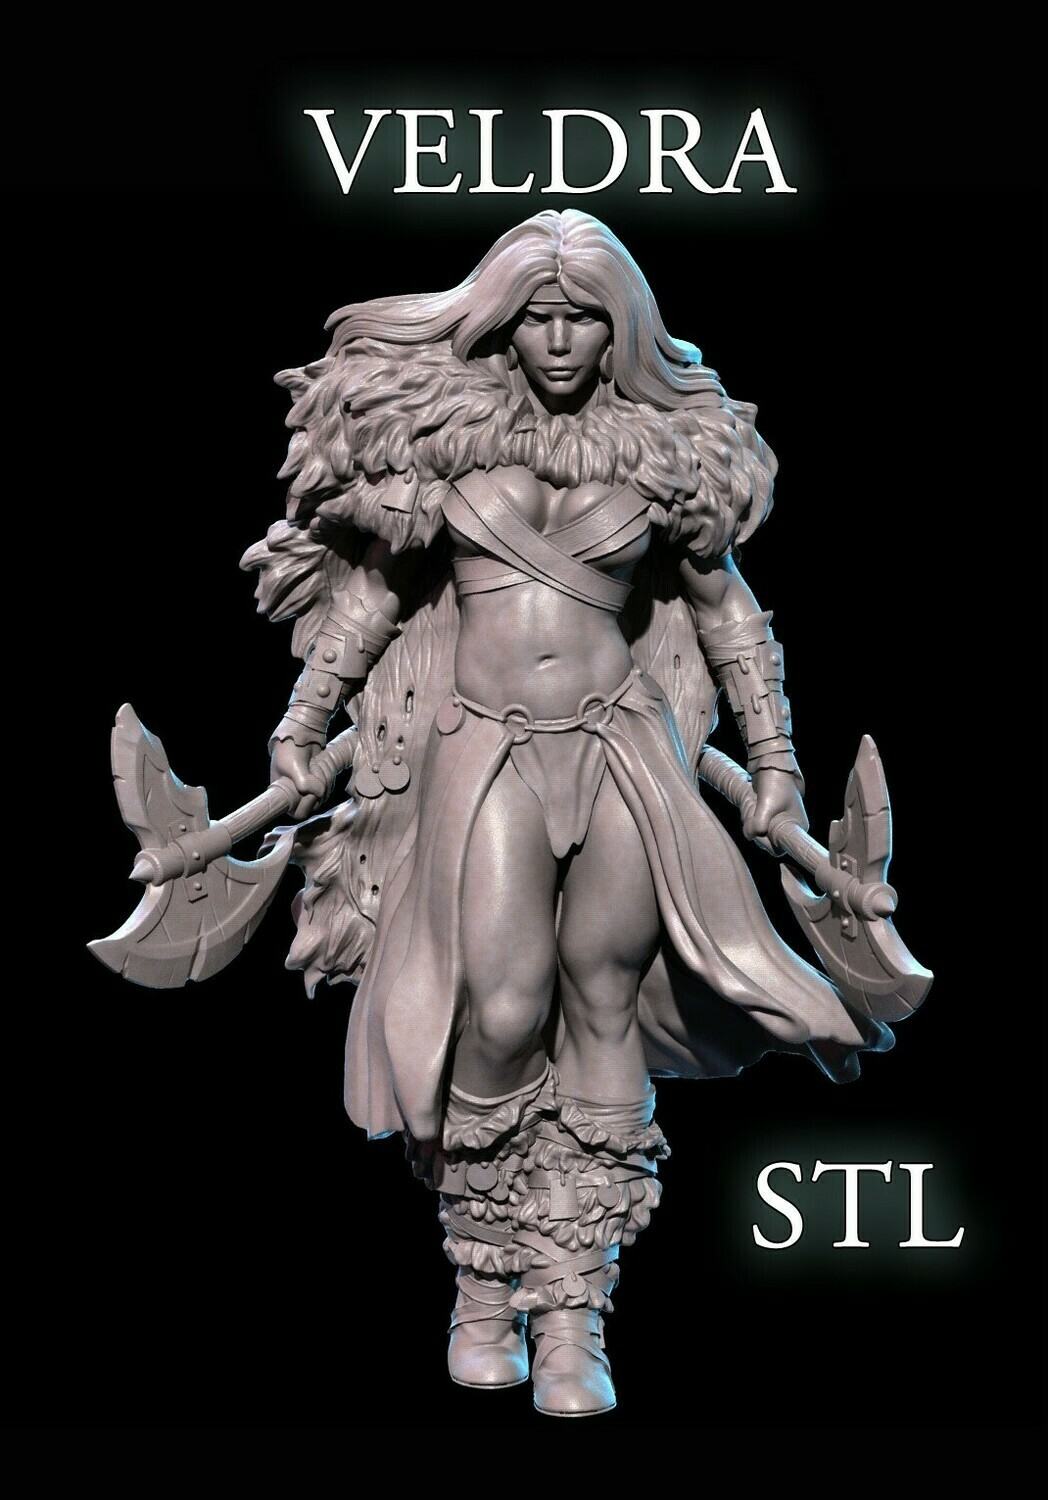 VELDRA THE BARBARIAN STL